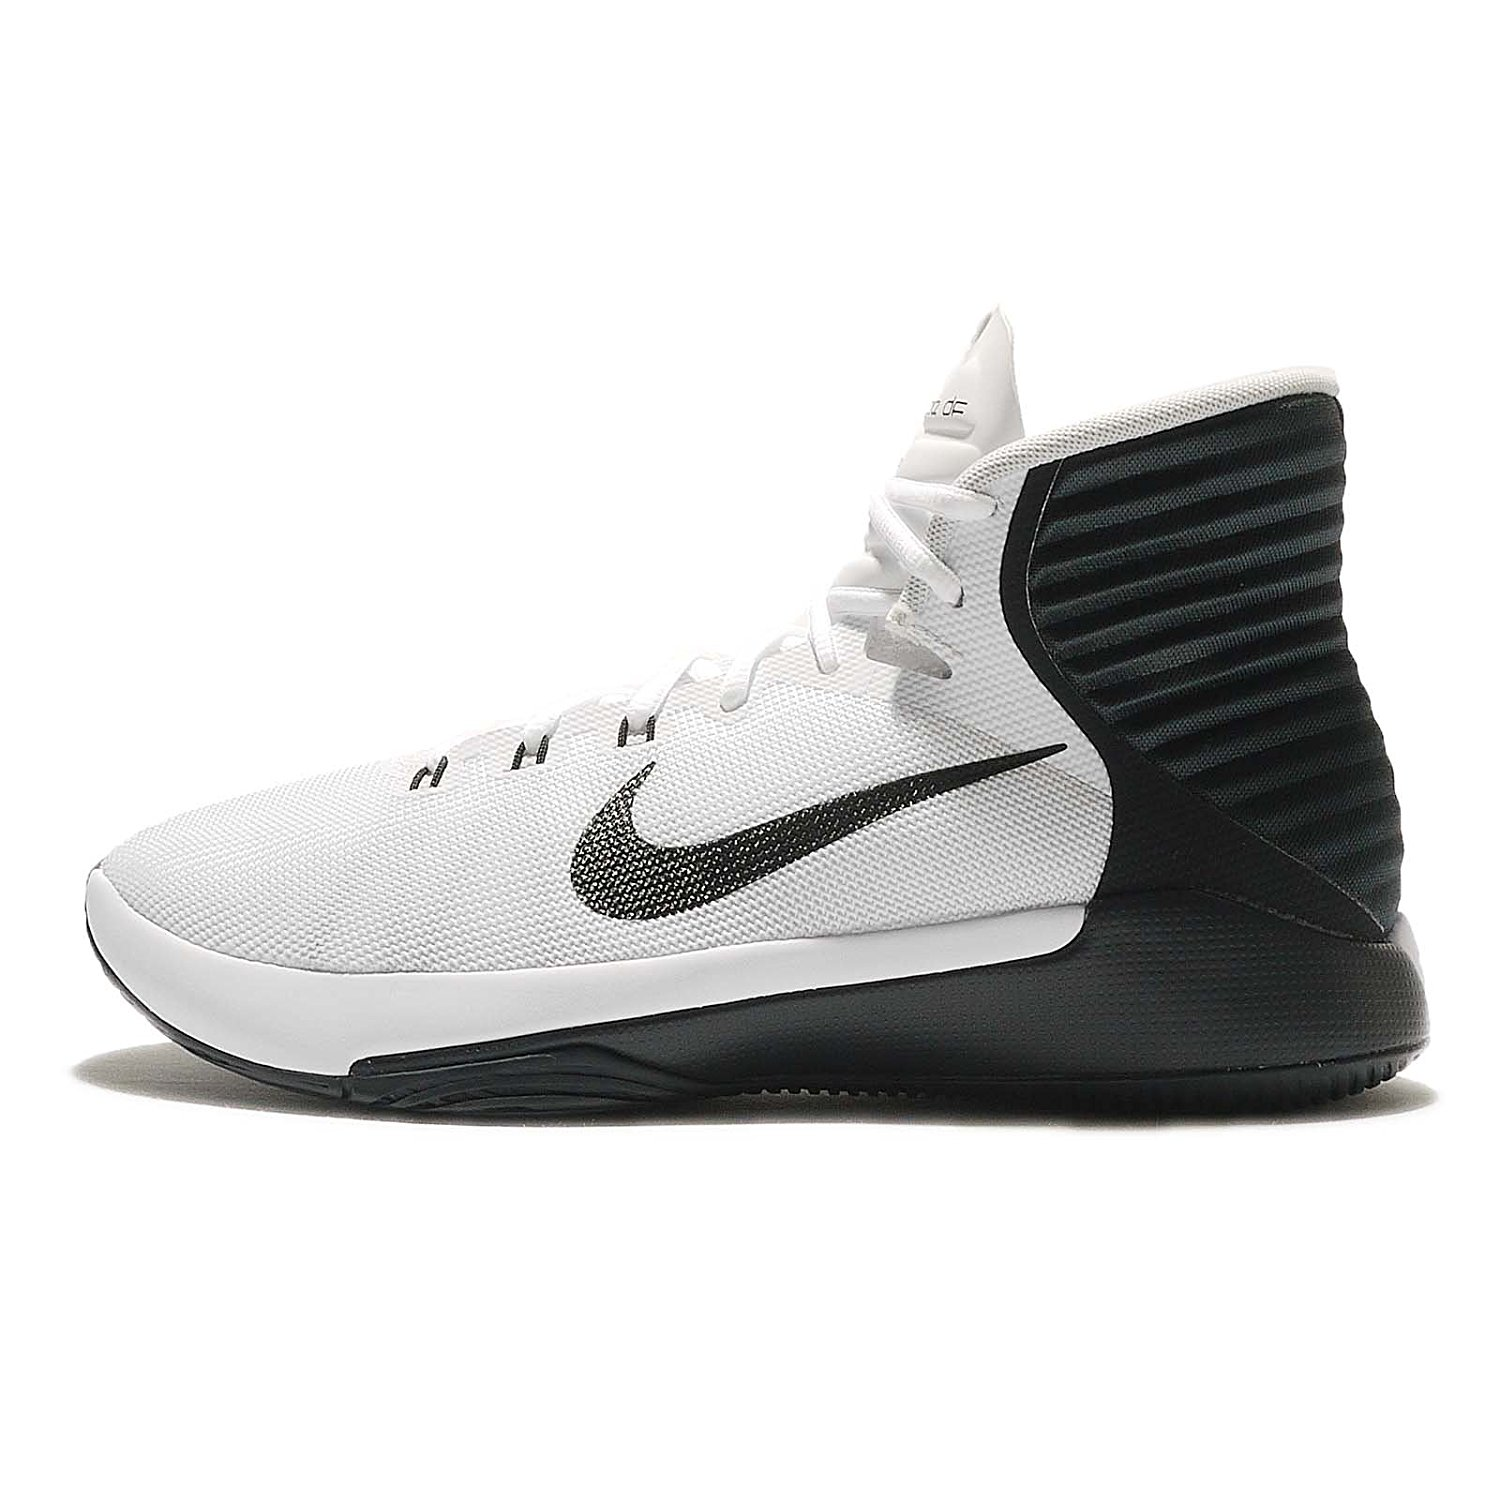 Buy NIKE Team Hype 6Y White 415243-100 BASKETBALL SHOES- Color ... 8a86d6033